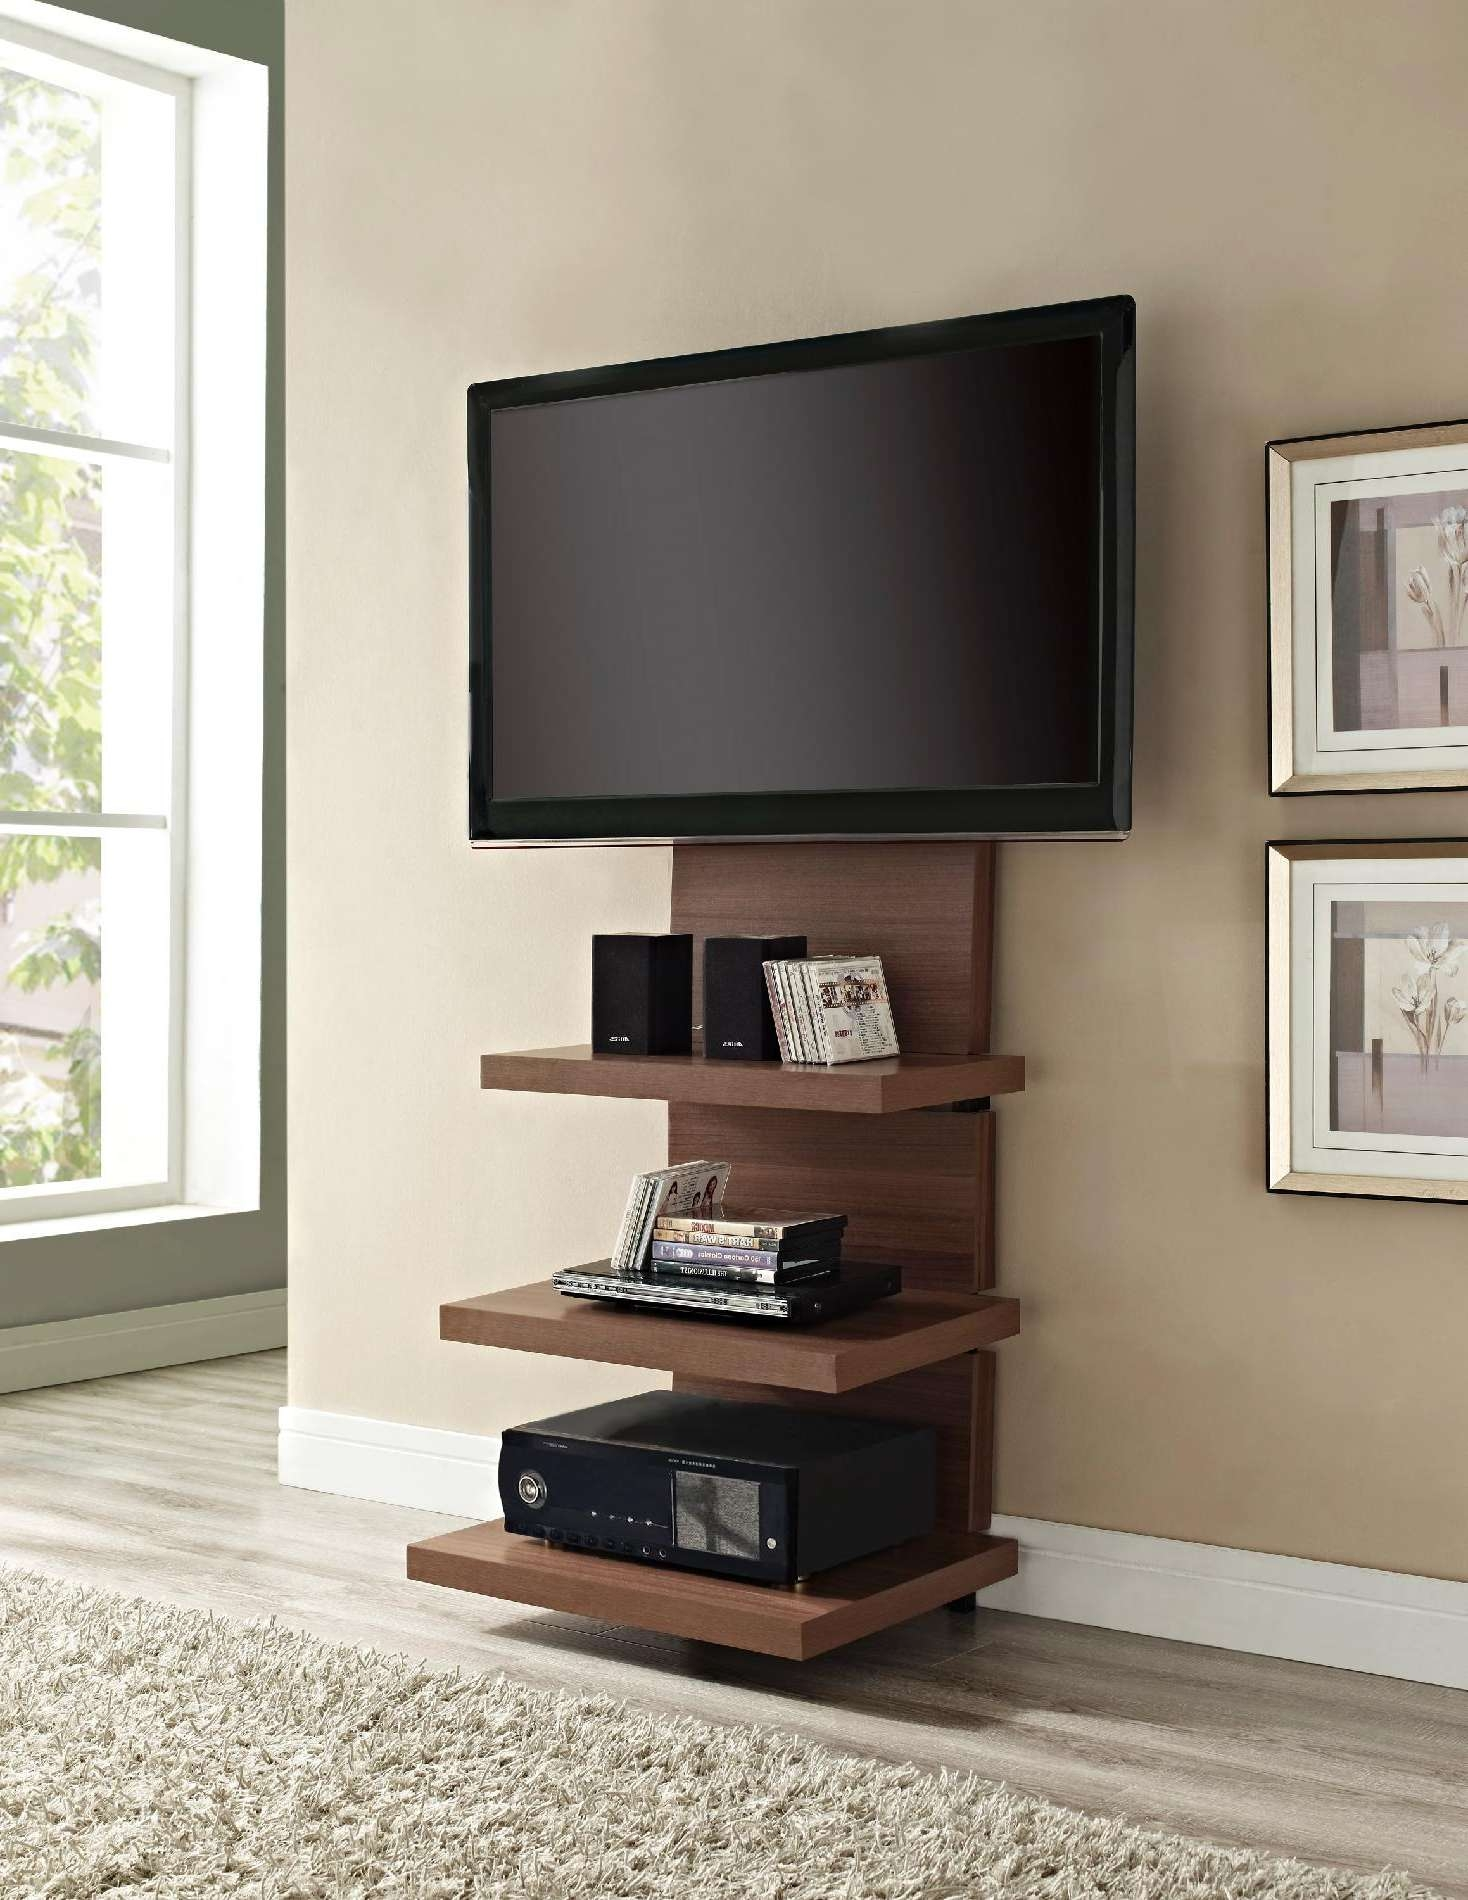 Tall Tv Stand For Bedroom Also Stands New Thin Ideas Images With Regard To Walnut Tv Stands For Flat Screens (View 2 of 20)